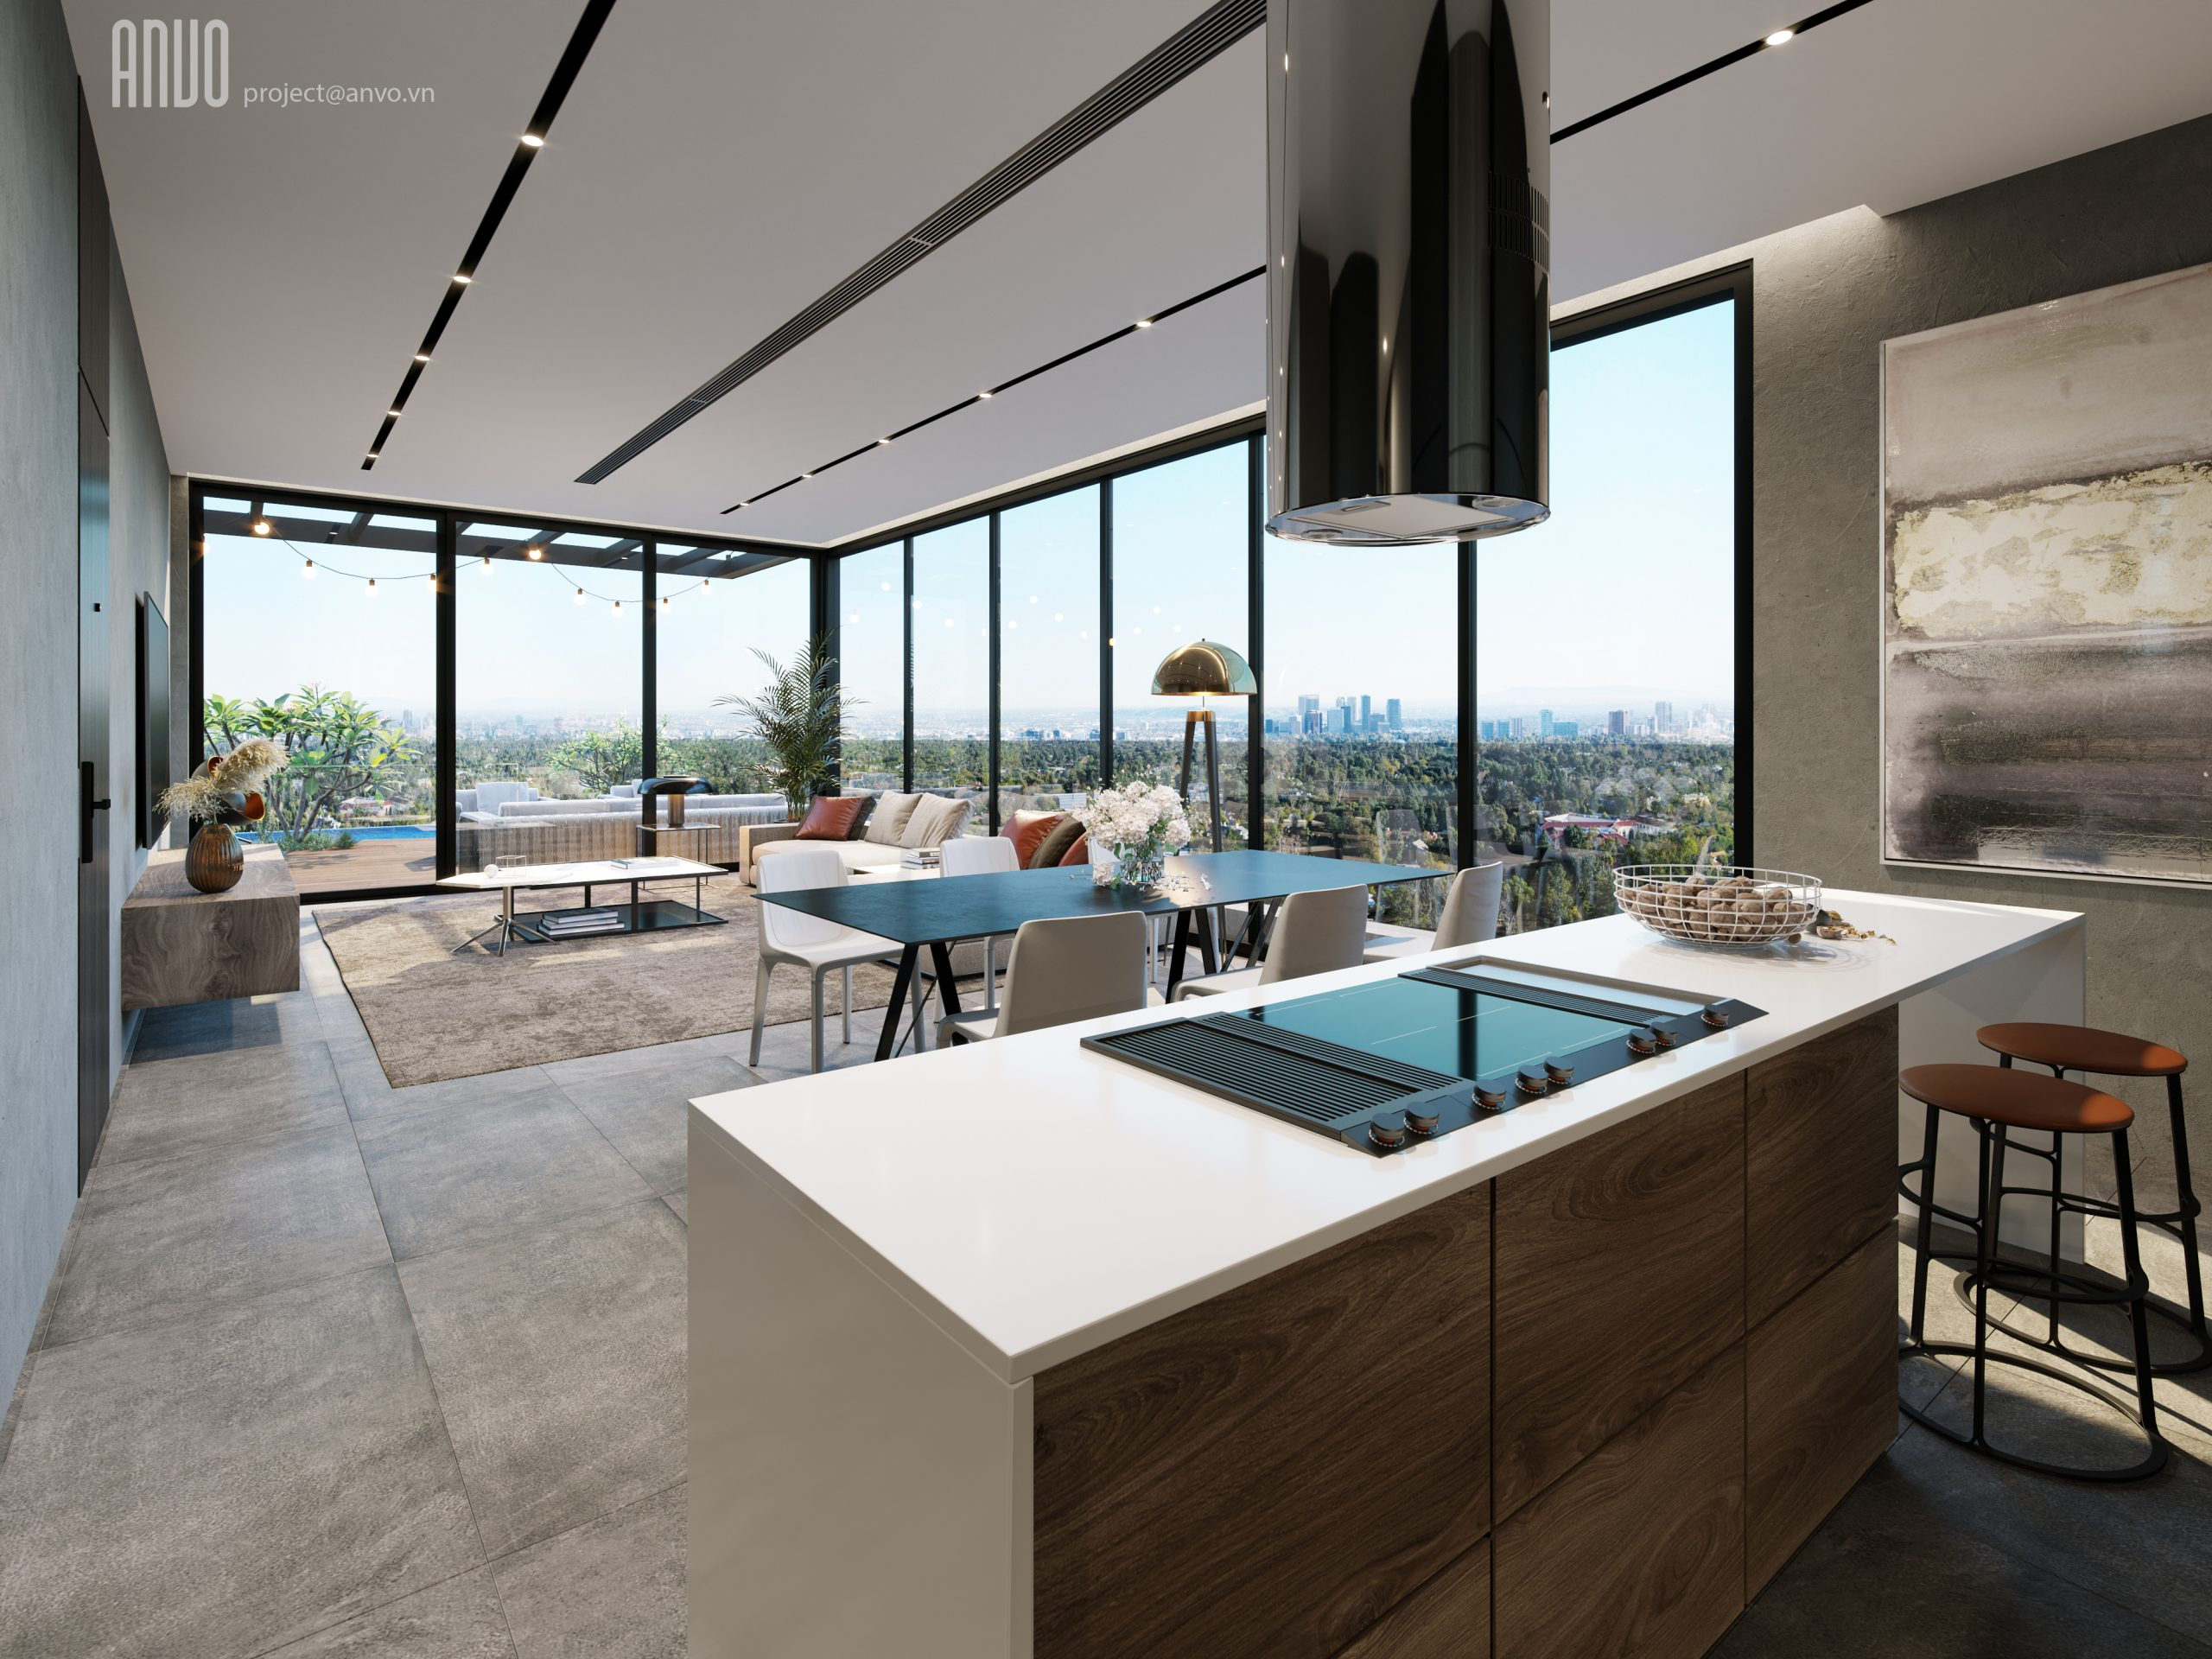 Penthouse_anvo.vn_01